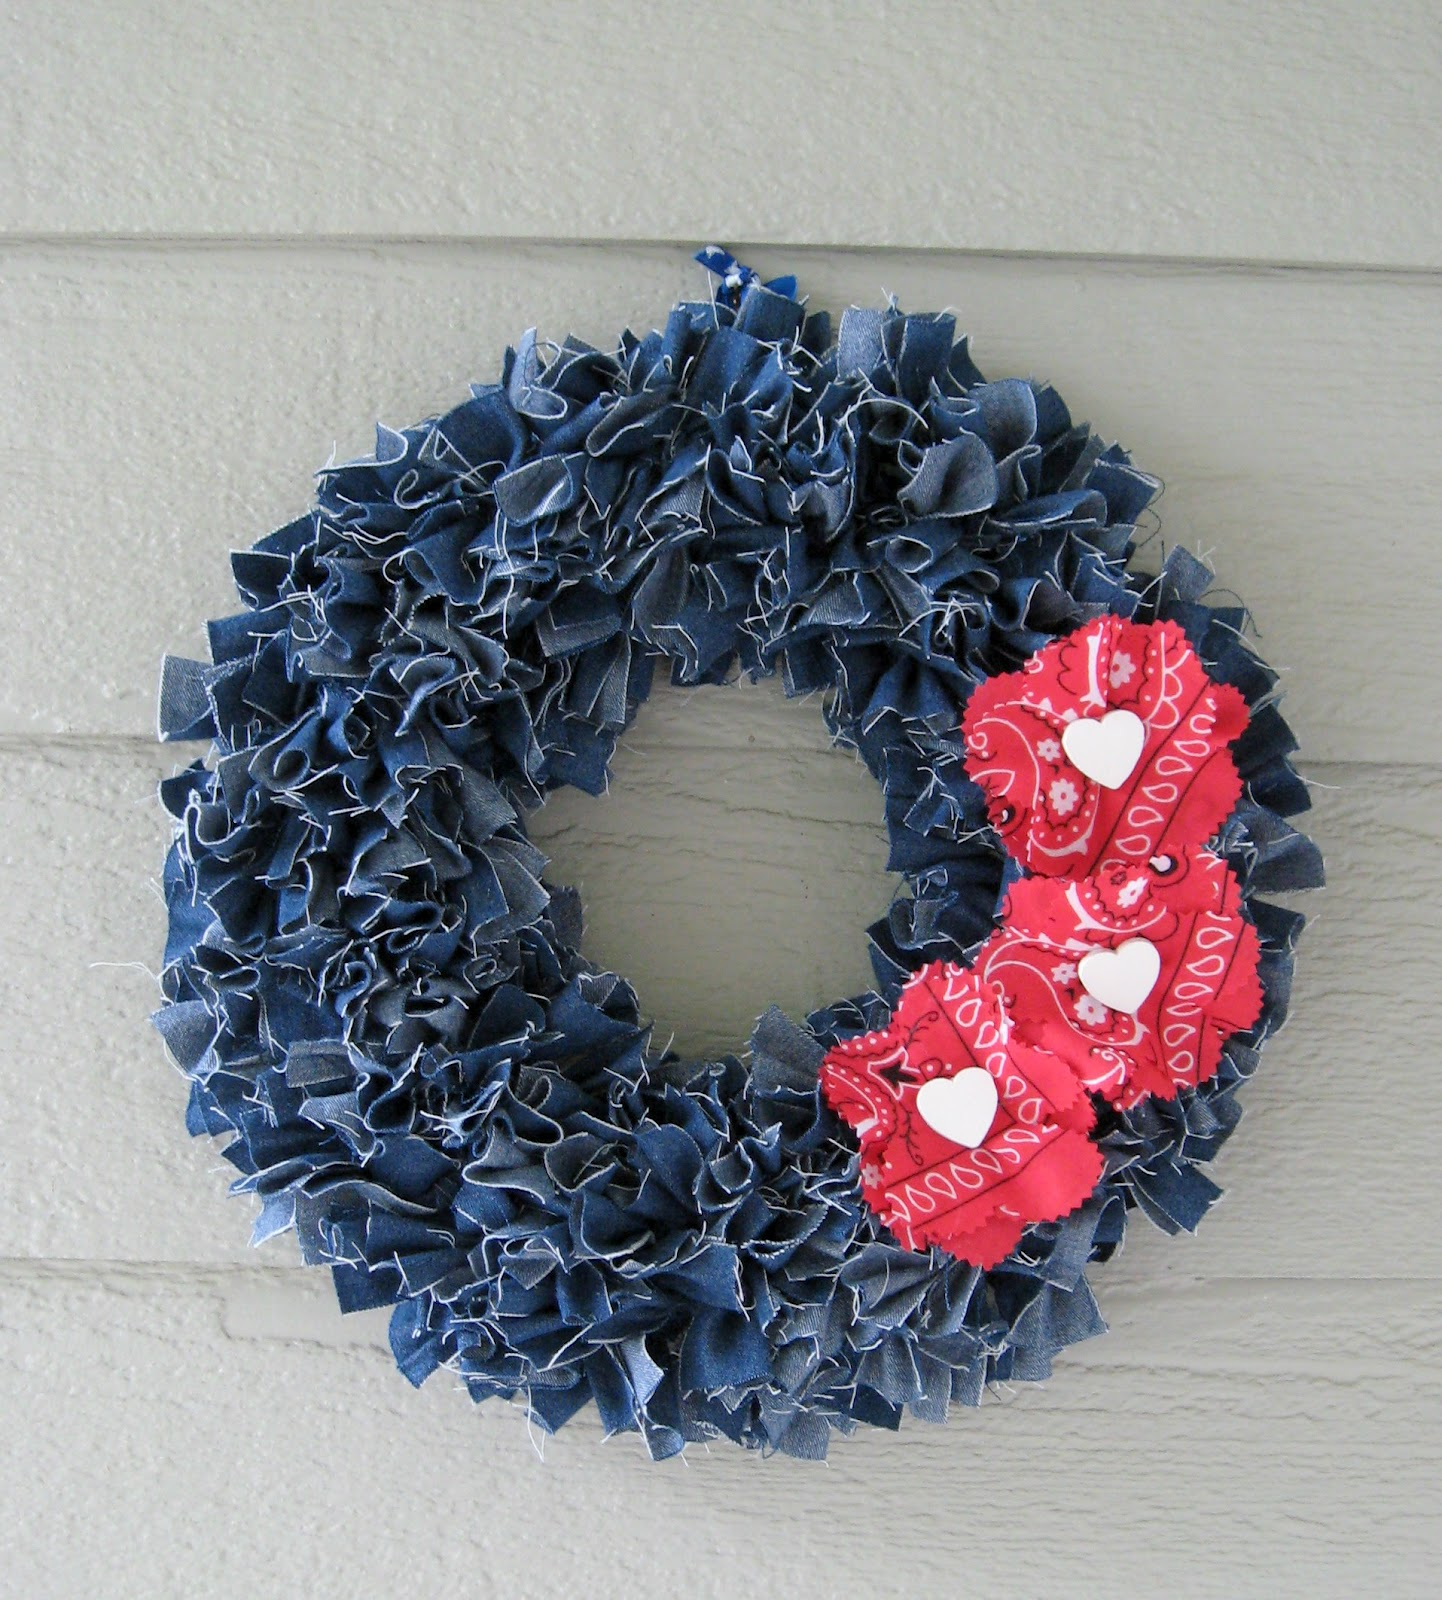 Make-a-denim-wreath